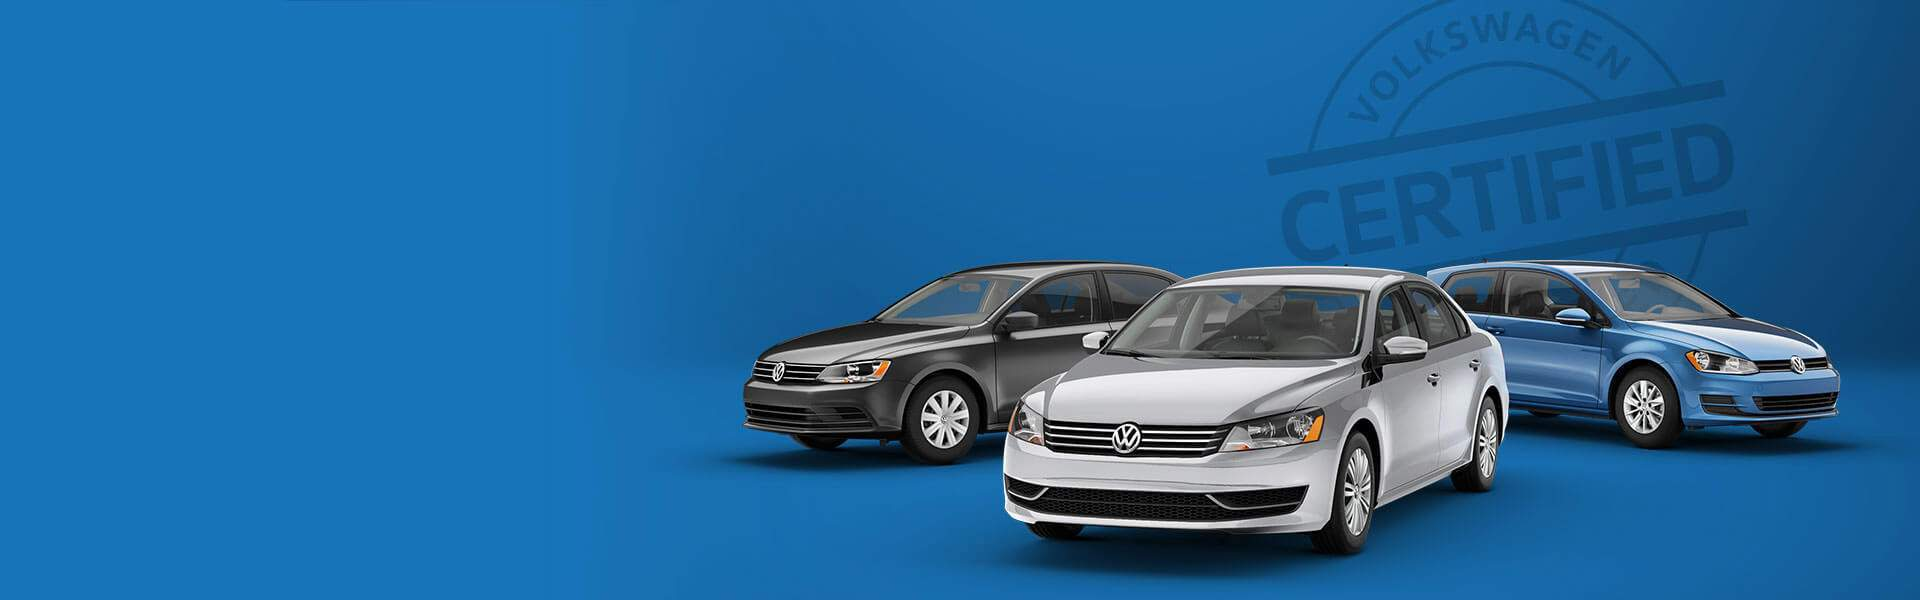 Volkswagen Certified Pre-Owned in Wexford, PA